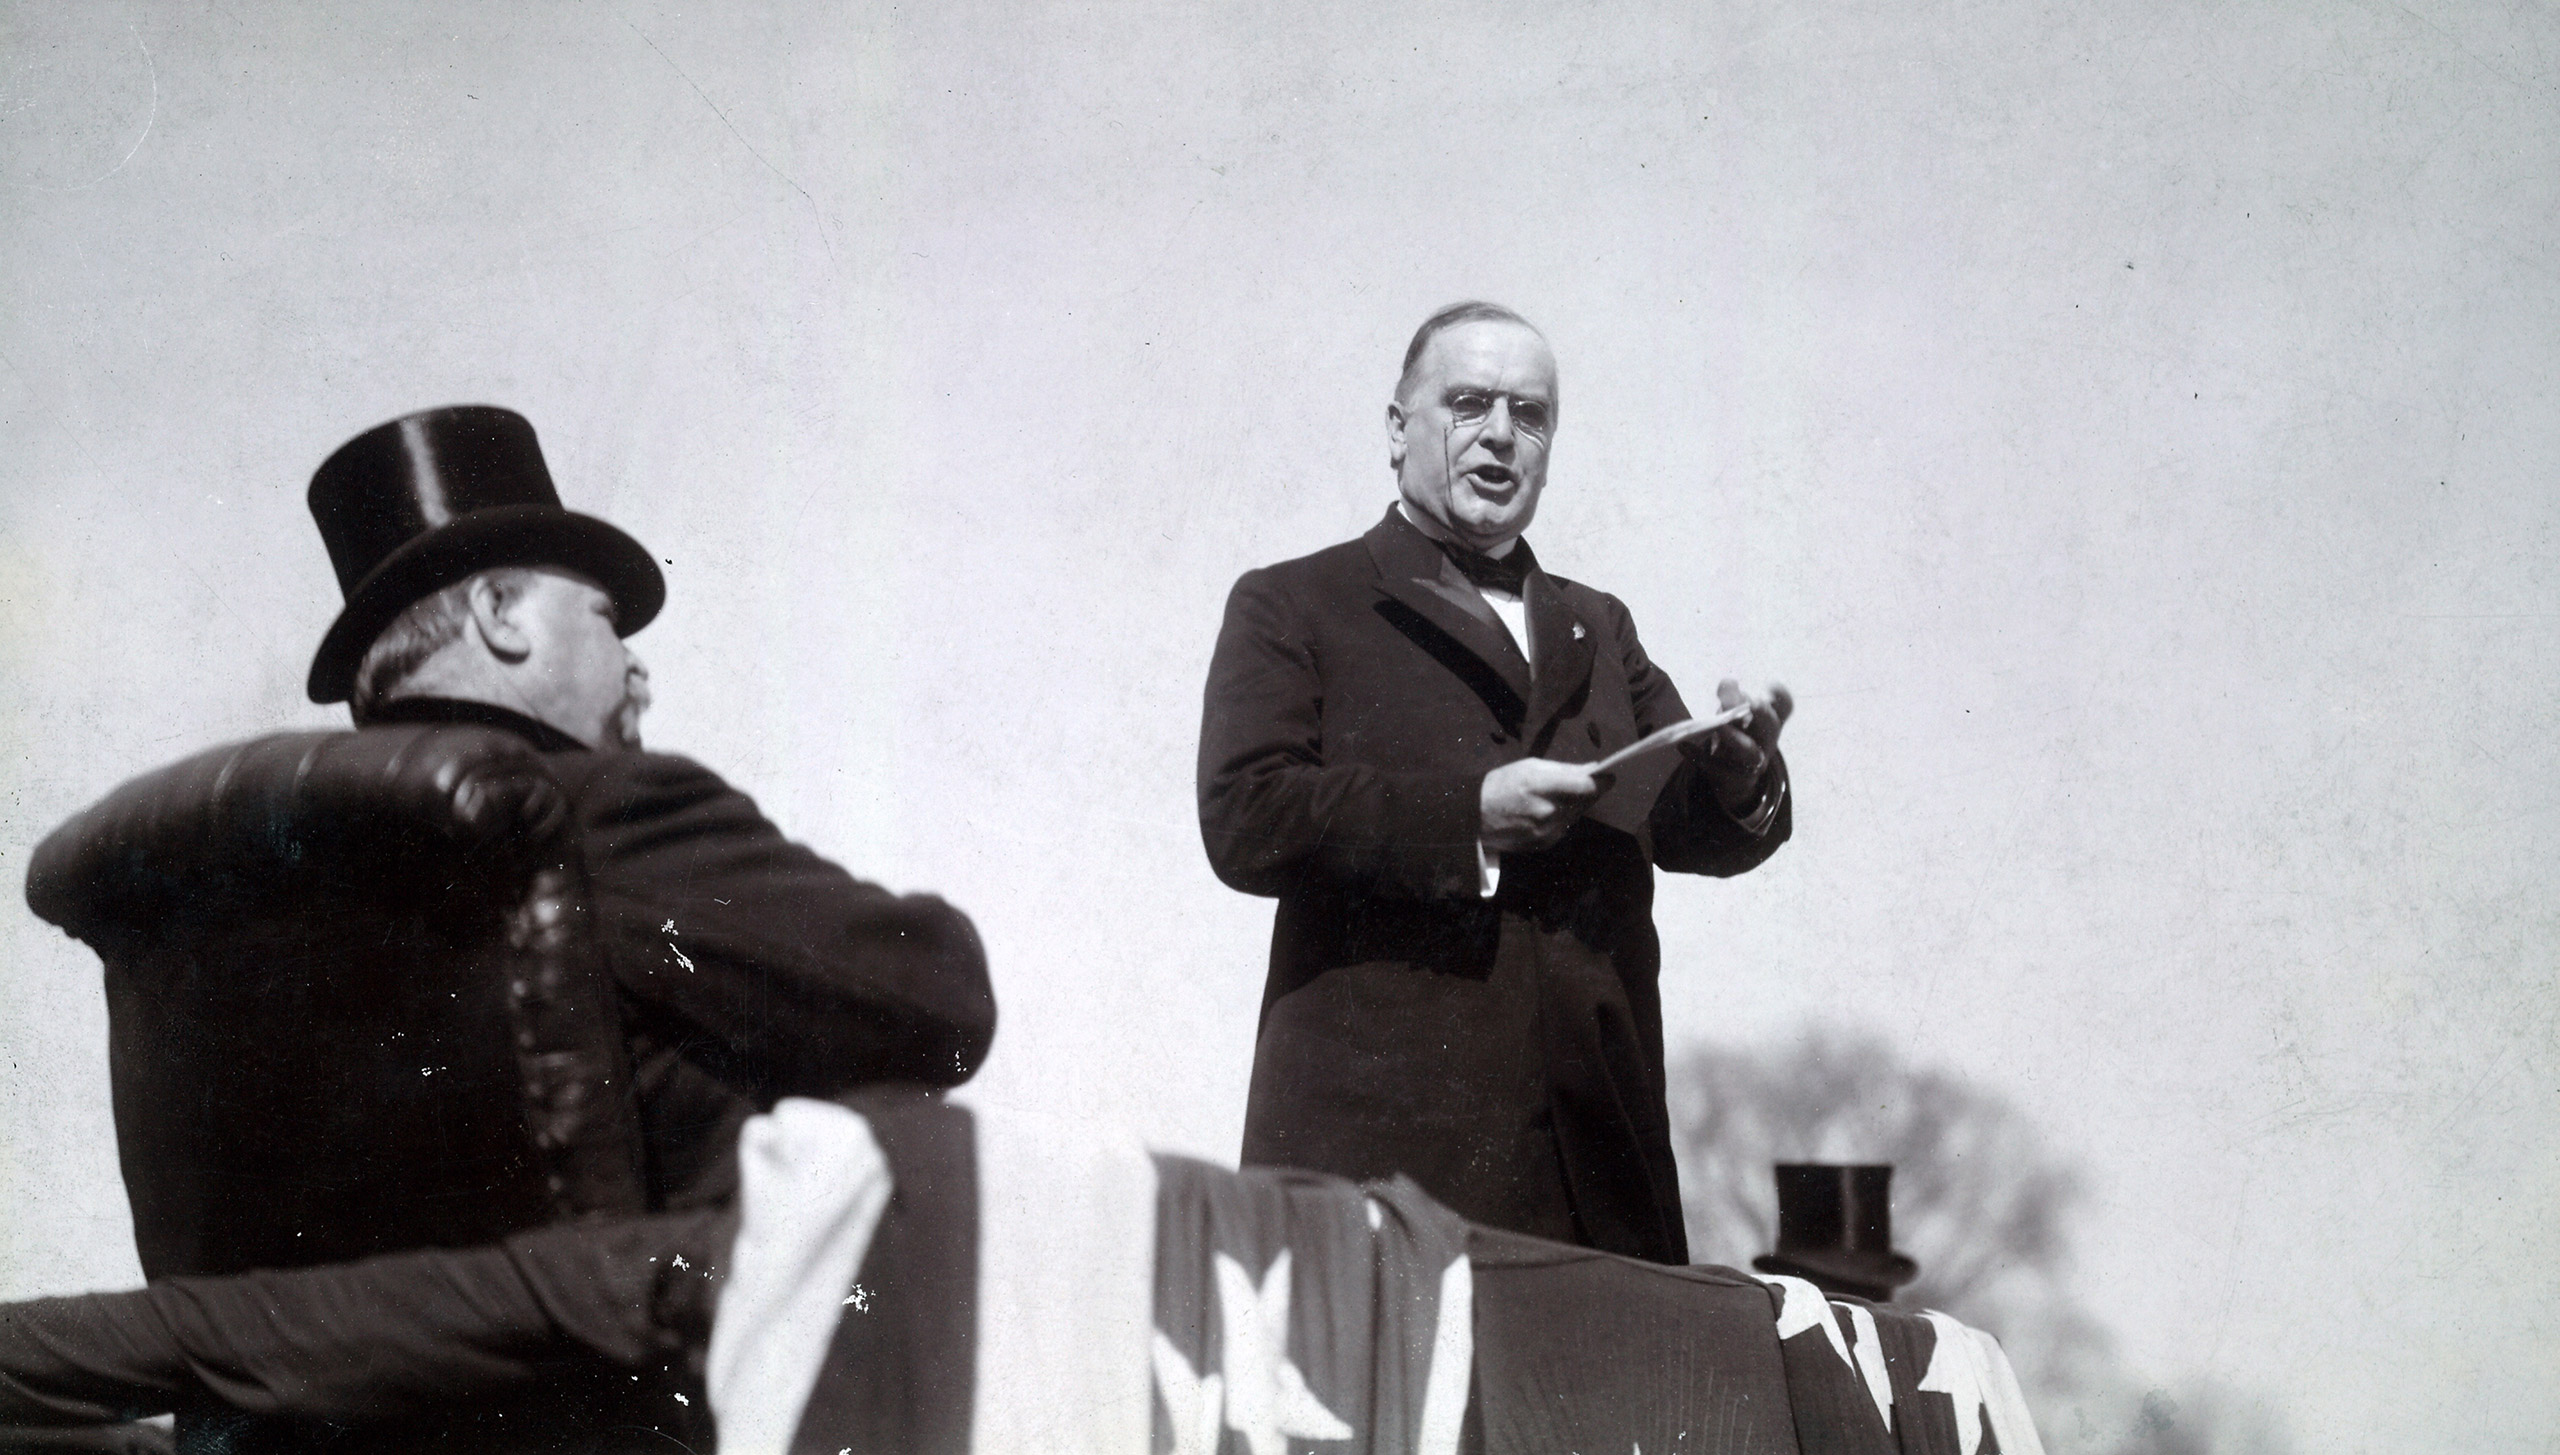 William McKinley delivering his inaugural address, 1897.